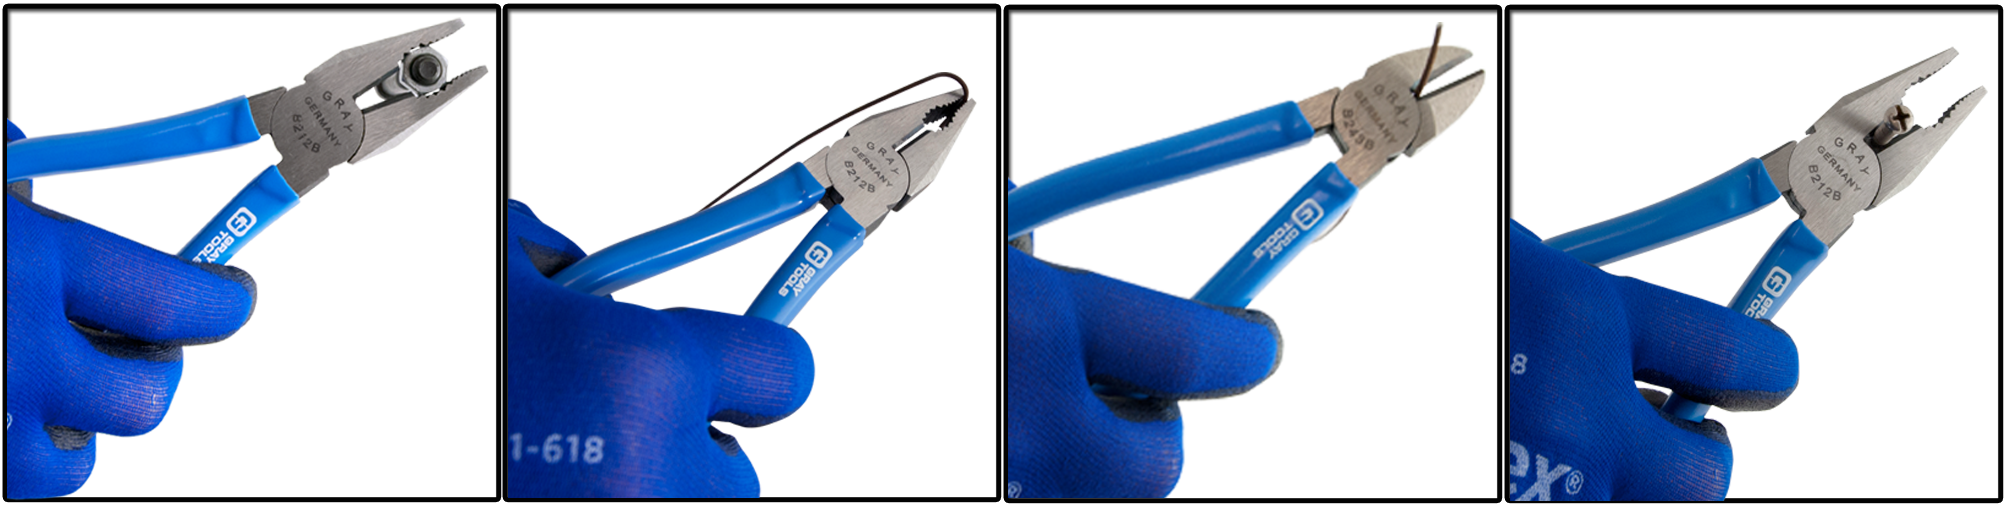 Pliers functionality